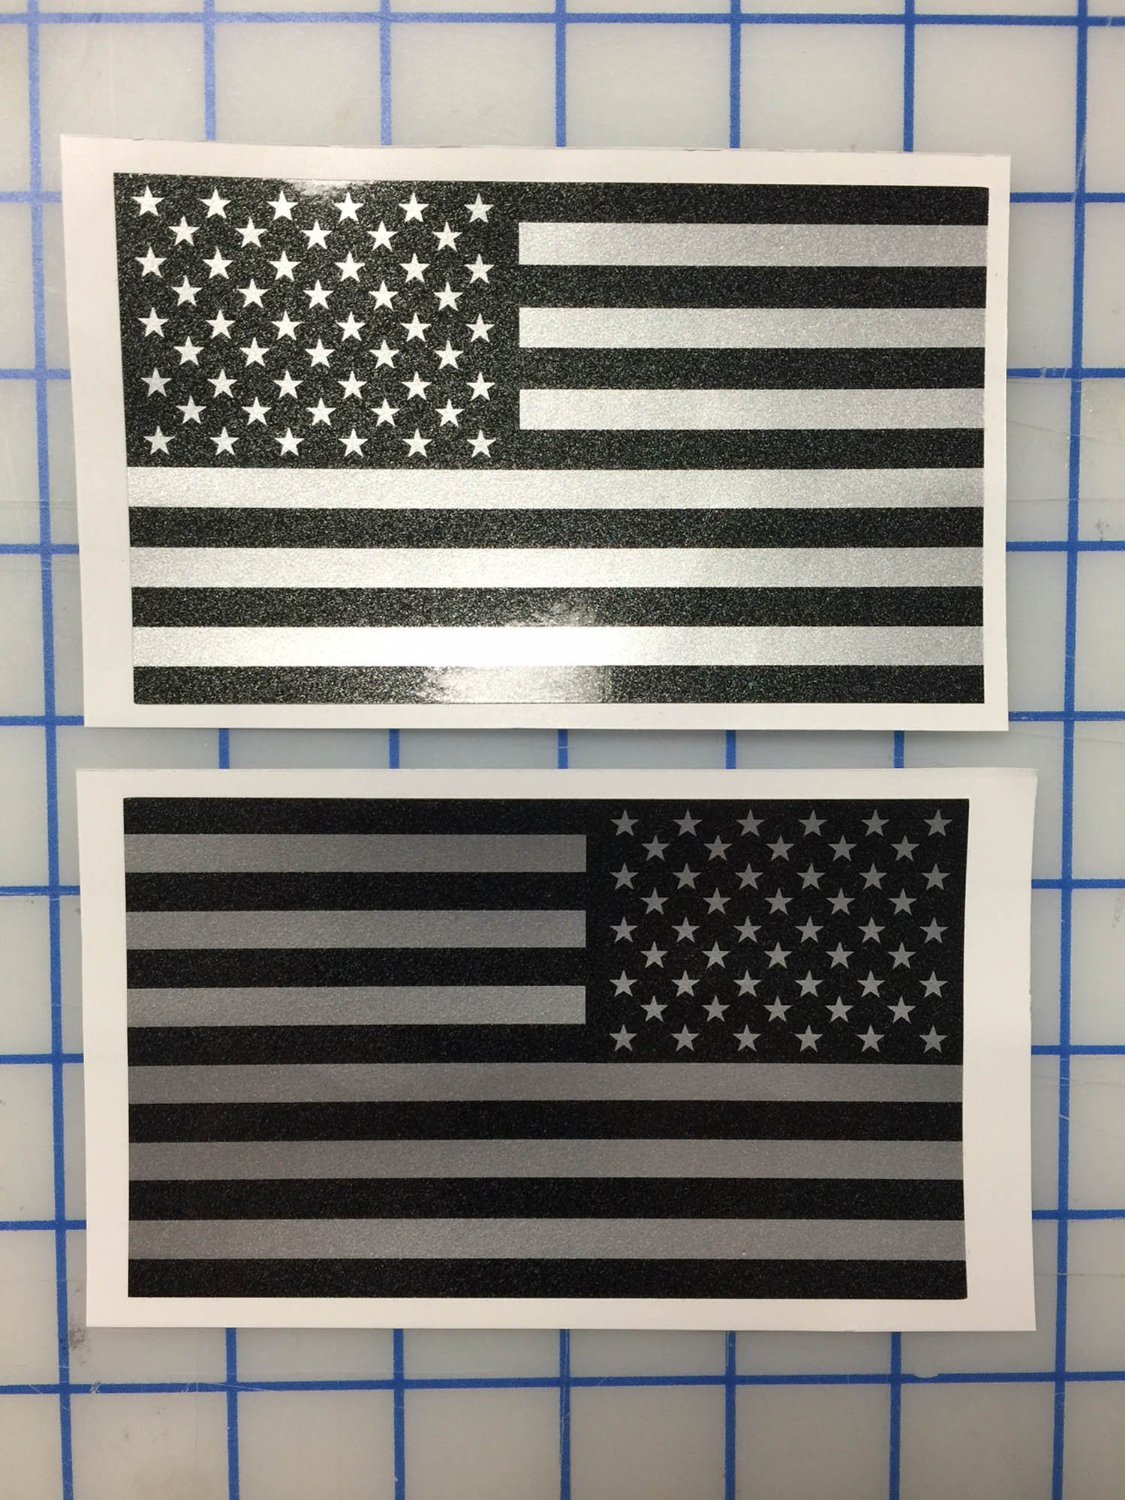 Amazoncom I Make Decals Larger Ghosted US American Subdued - Motorcycle helmet decals militarysubdued american flag sticker military tactical usa helmet decal